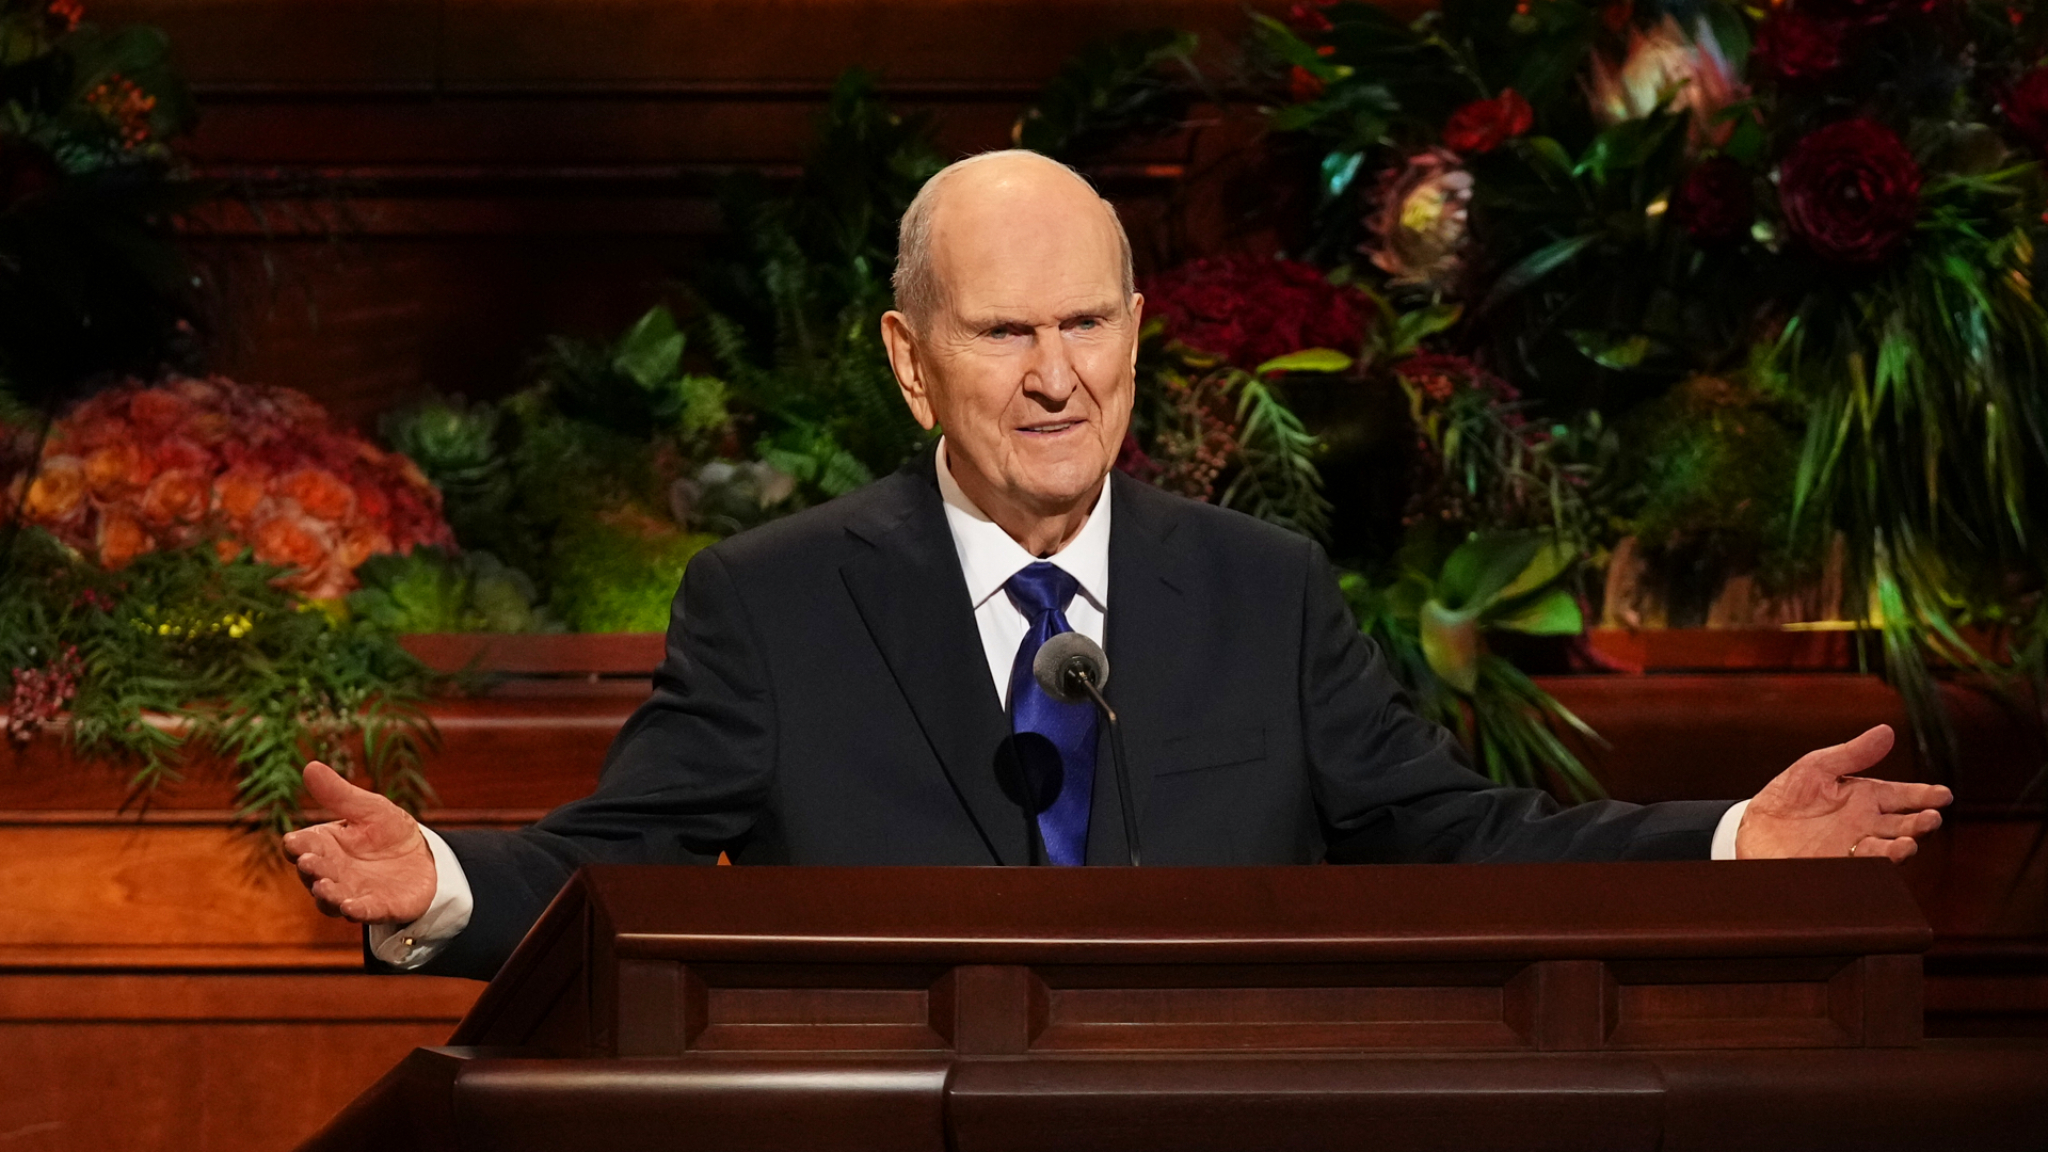 President Russell M. Nelson stands at the pulpit and announces plans for 13 new temples to be built.